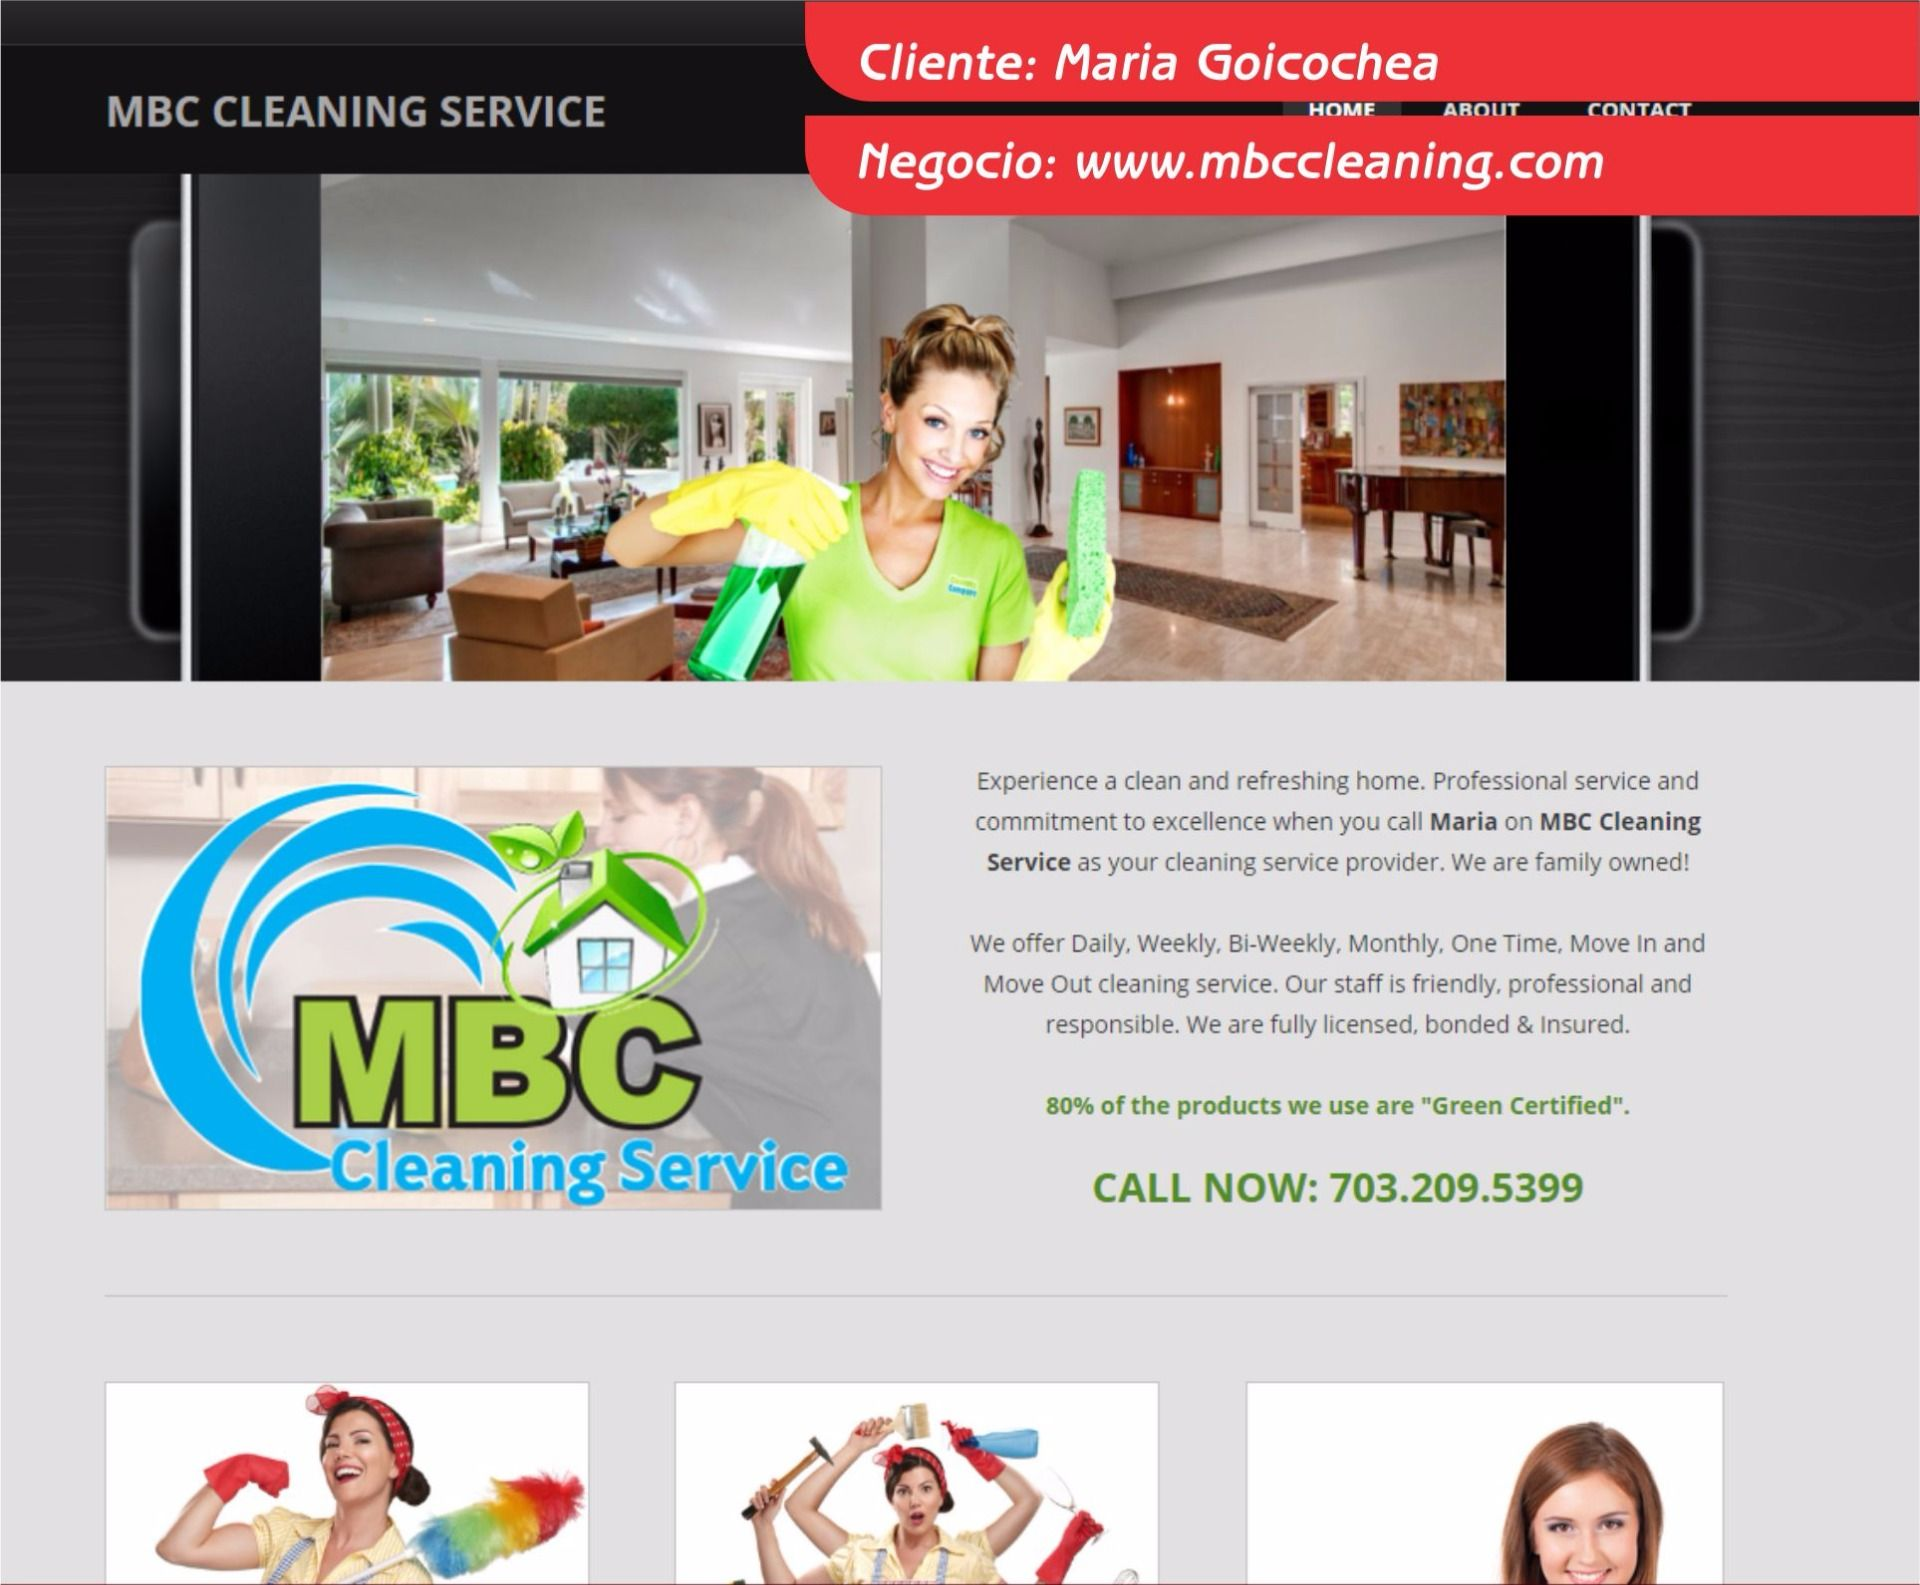 MBC Cleaning Services